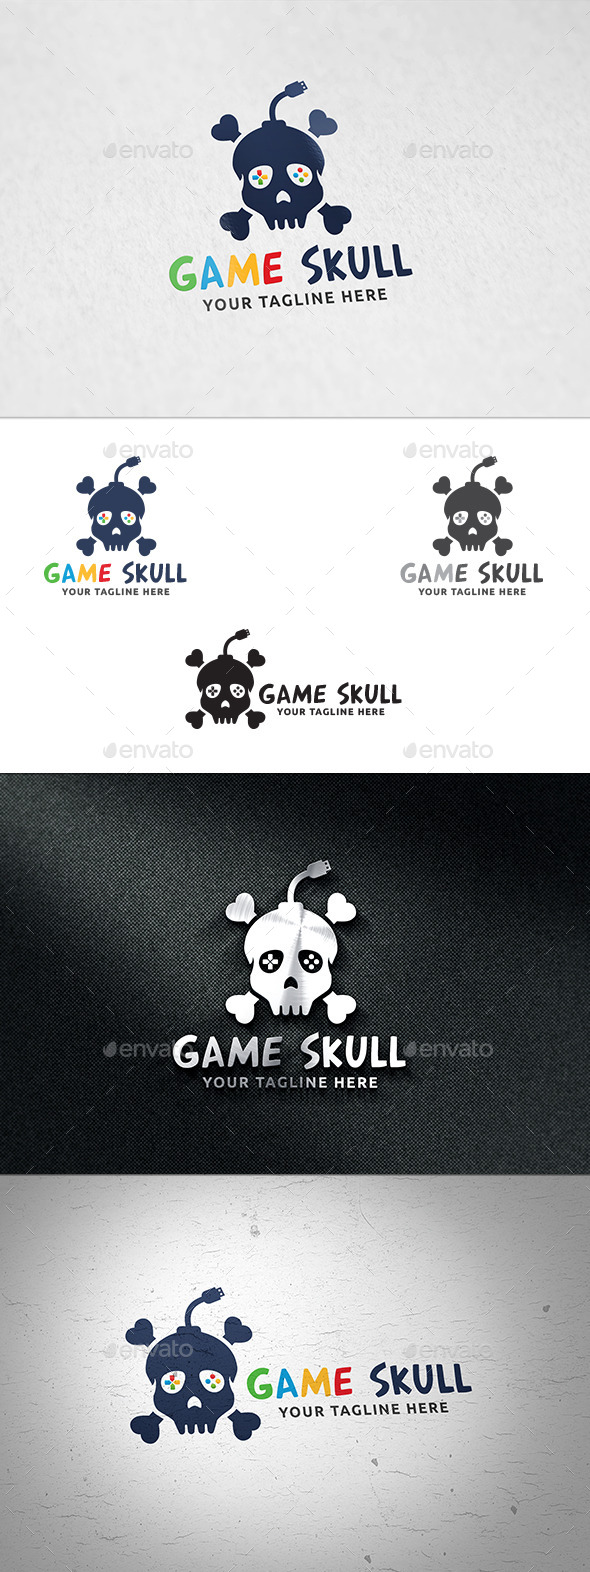 Game Skull - Logo Template - Humans Logo Templates